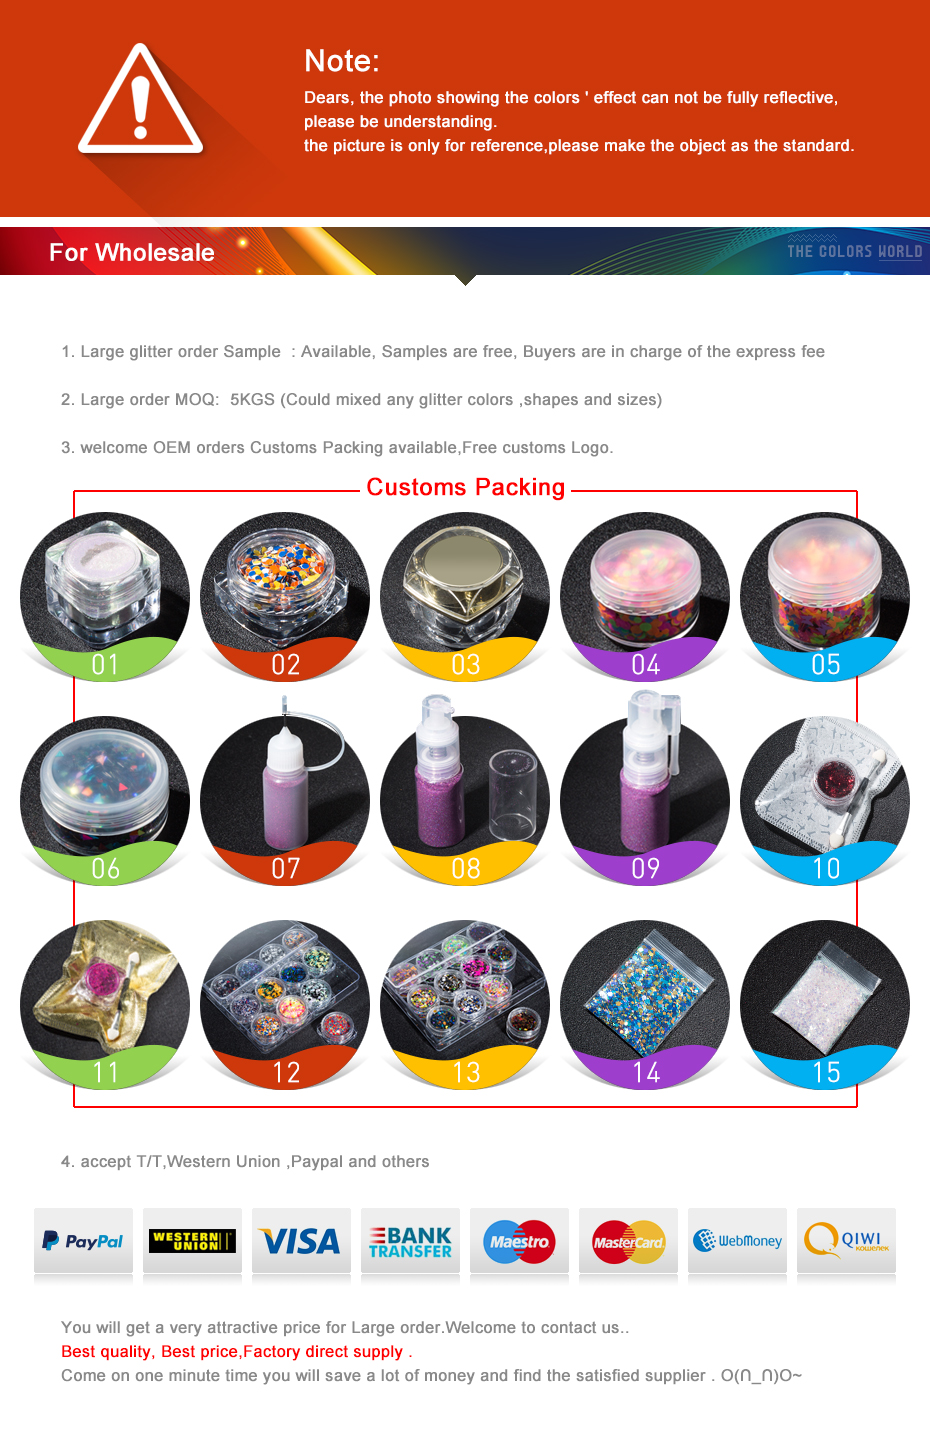 TCT-346 Chameleon 3D Star Stereoscopic Nail Glitter Nail Art Decoration Face Paint Tattoo Tumblers Crafts Festival Accessories